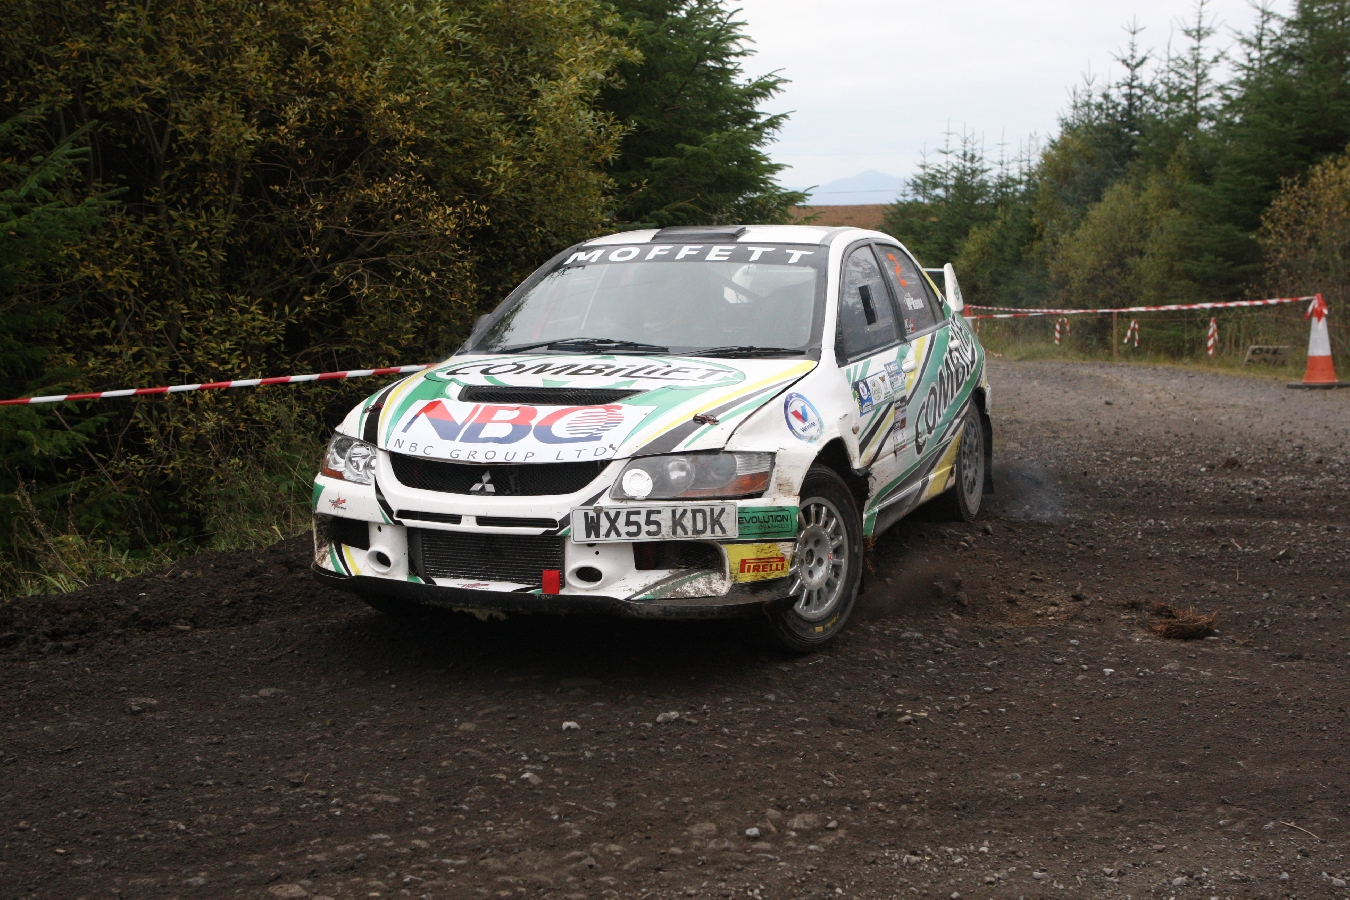 Moffett's Tops In Mayo - Added Spice to Championship Race!